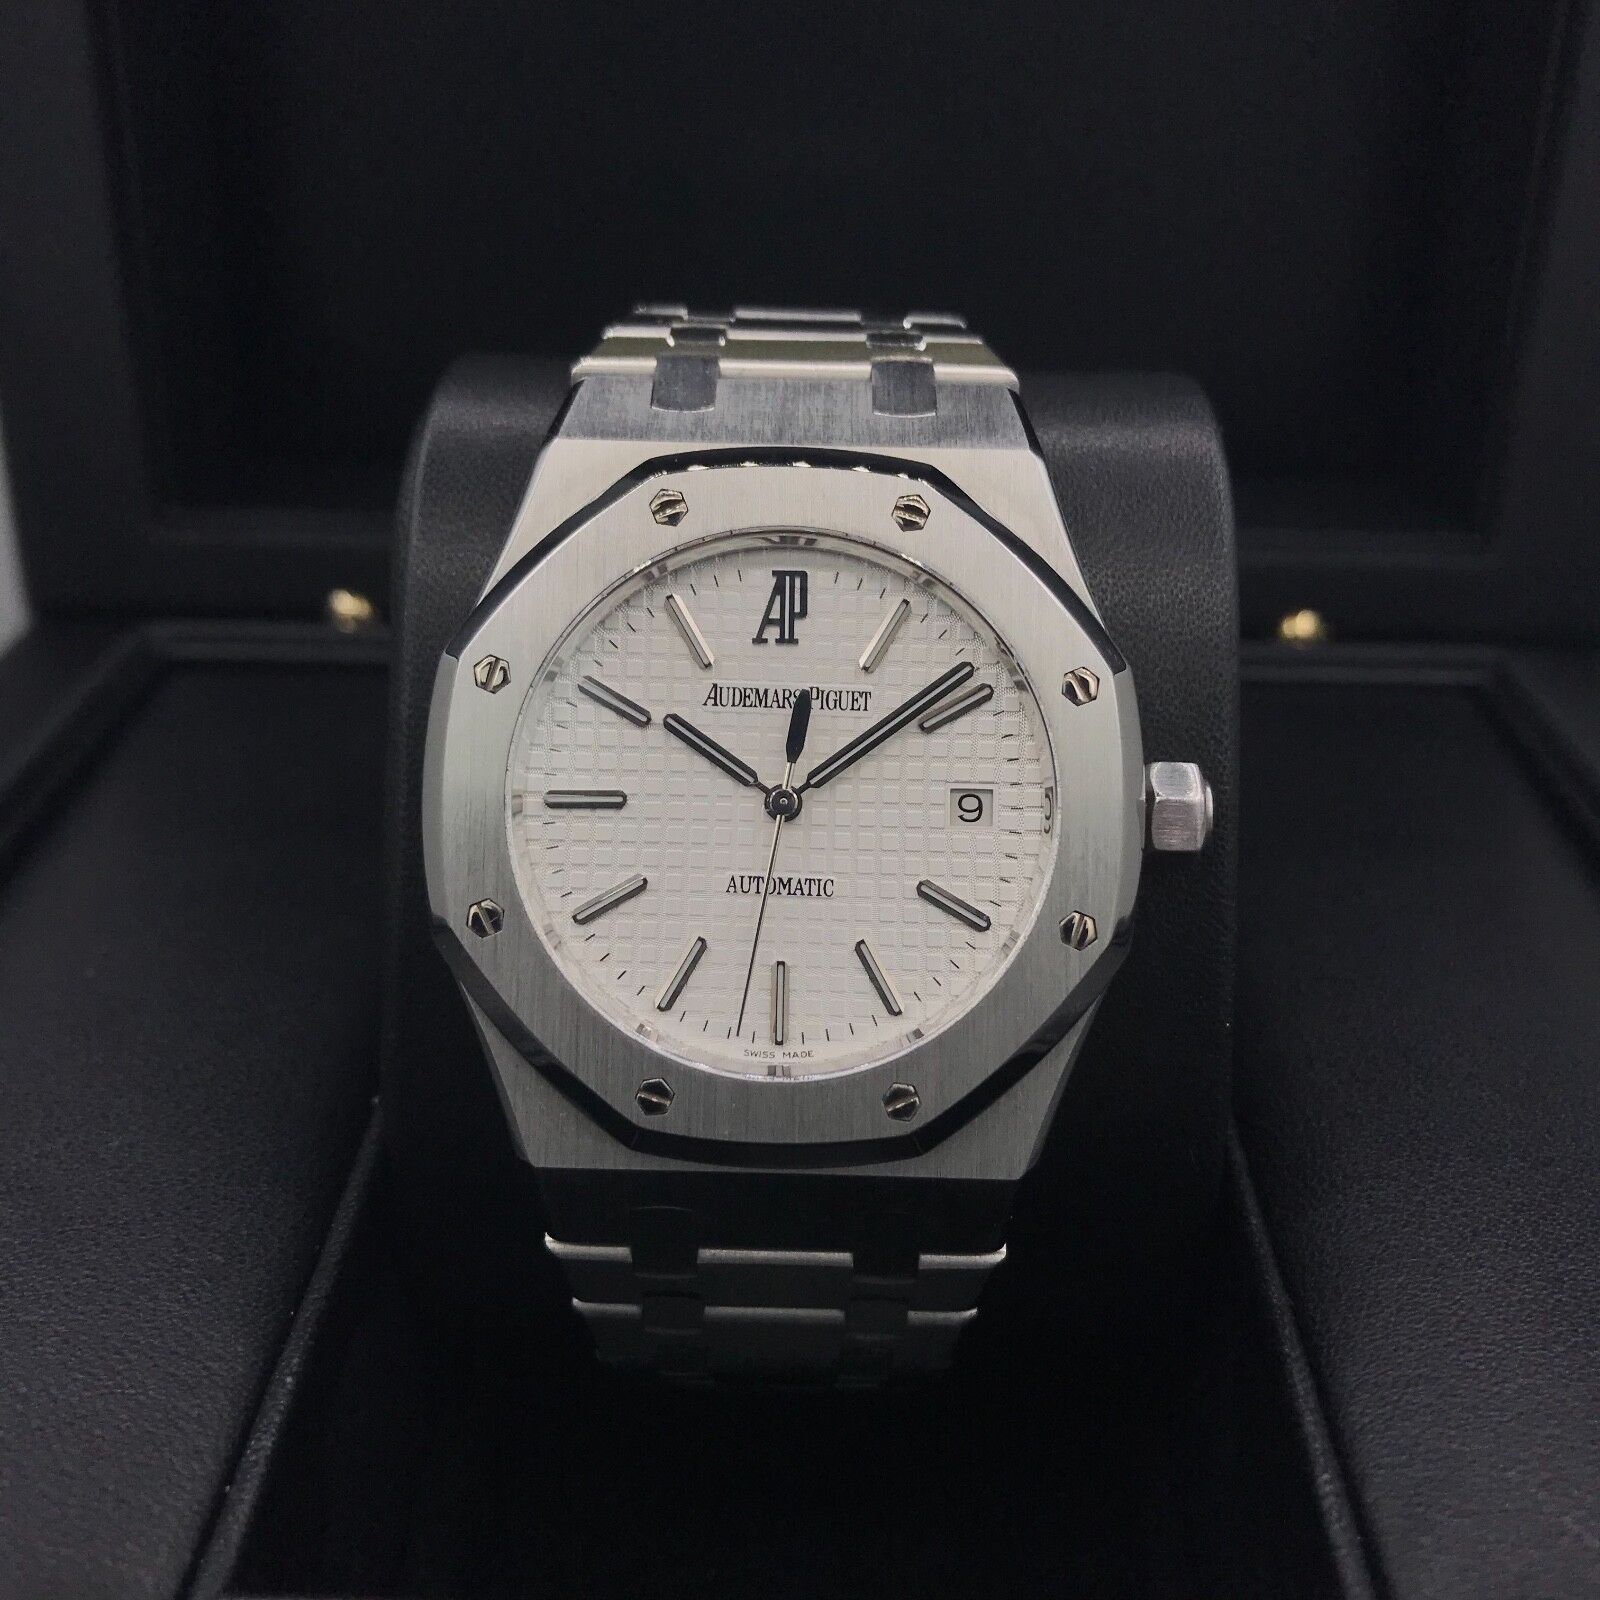 $13995.00 - Audemars Piguet Royal Oak Stainless Steel 39mm White Dial 15300ST.OO.1220ST.01